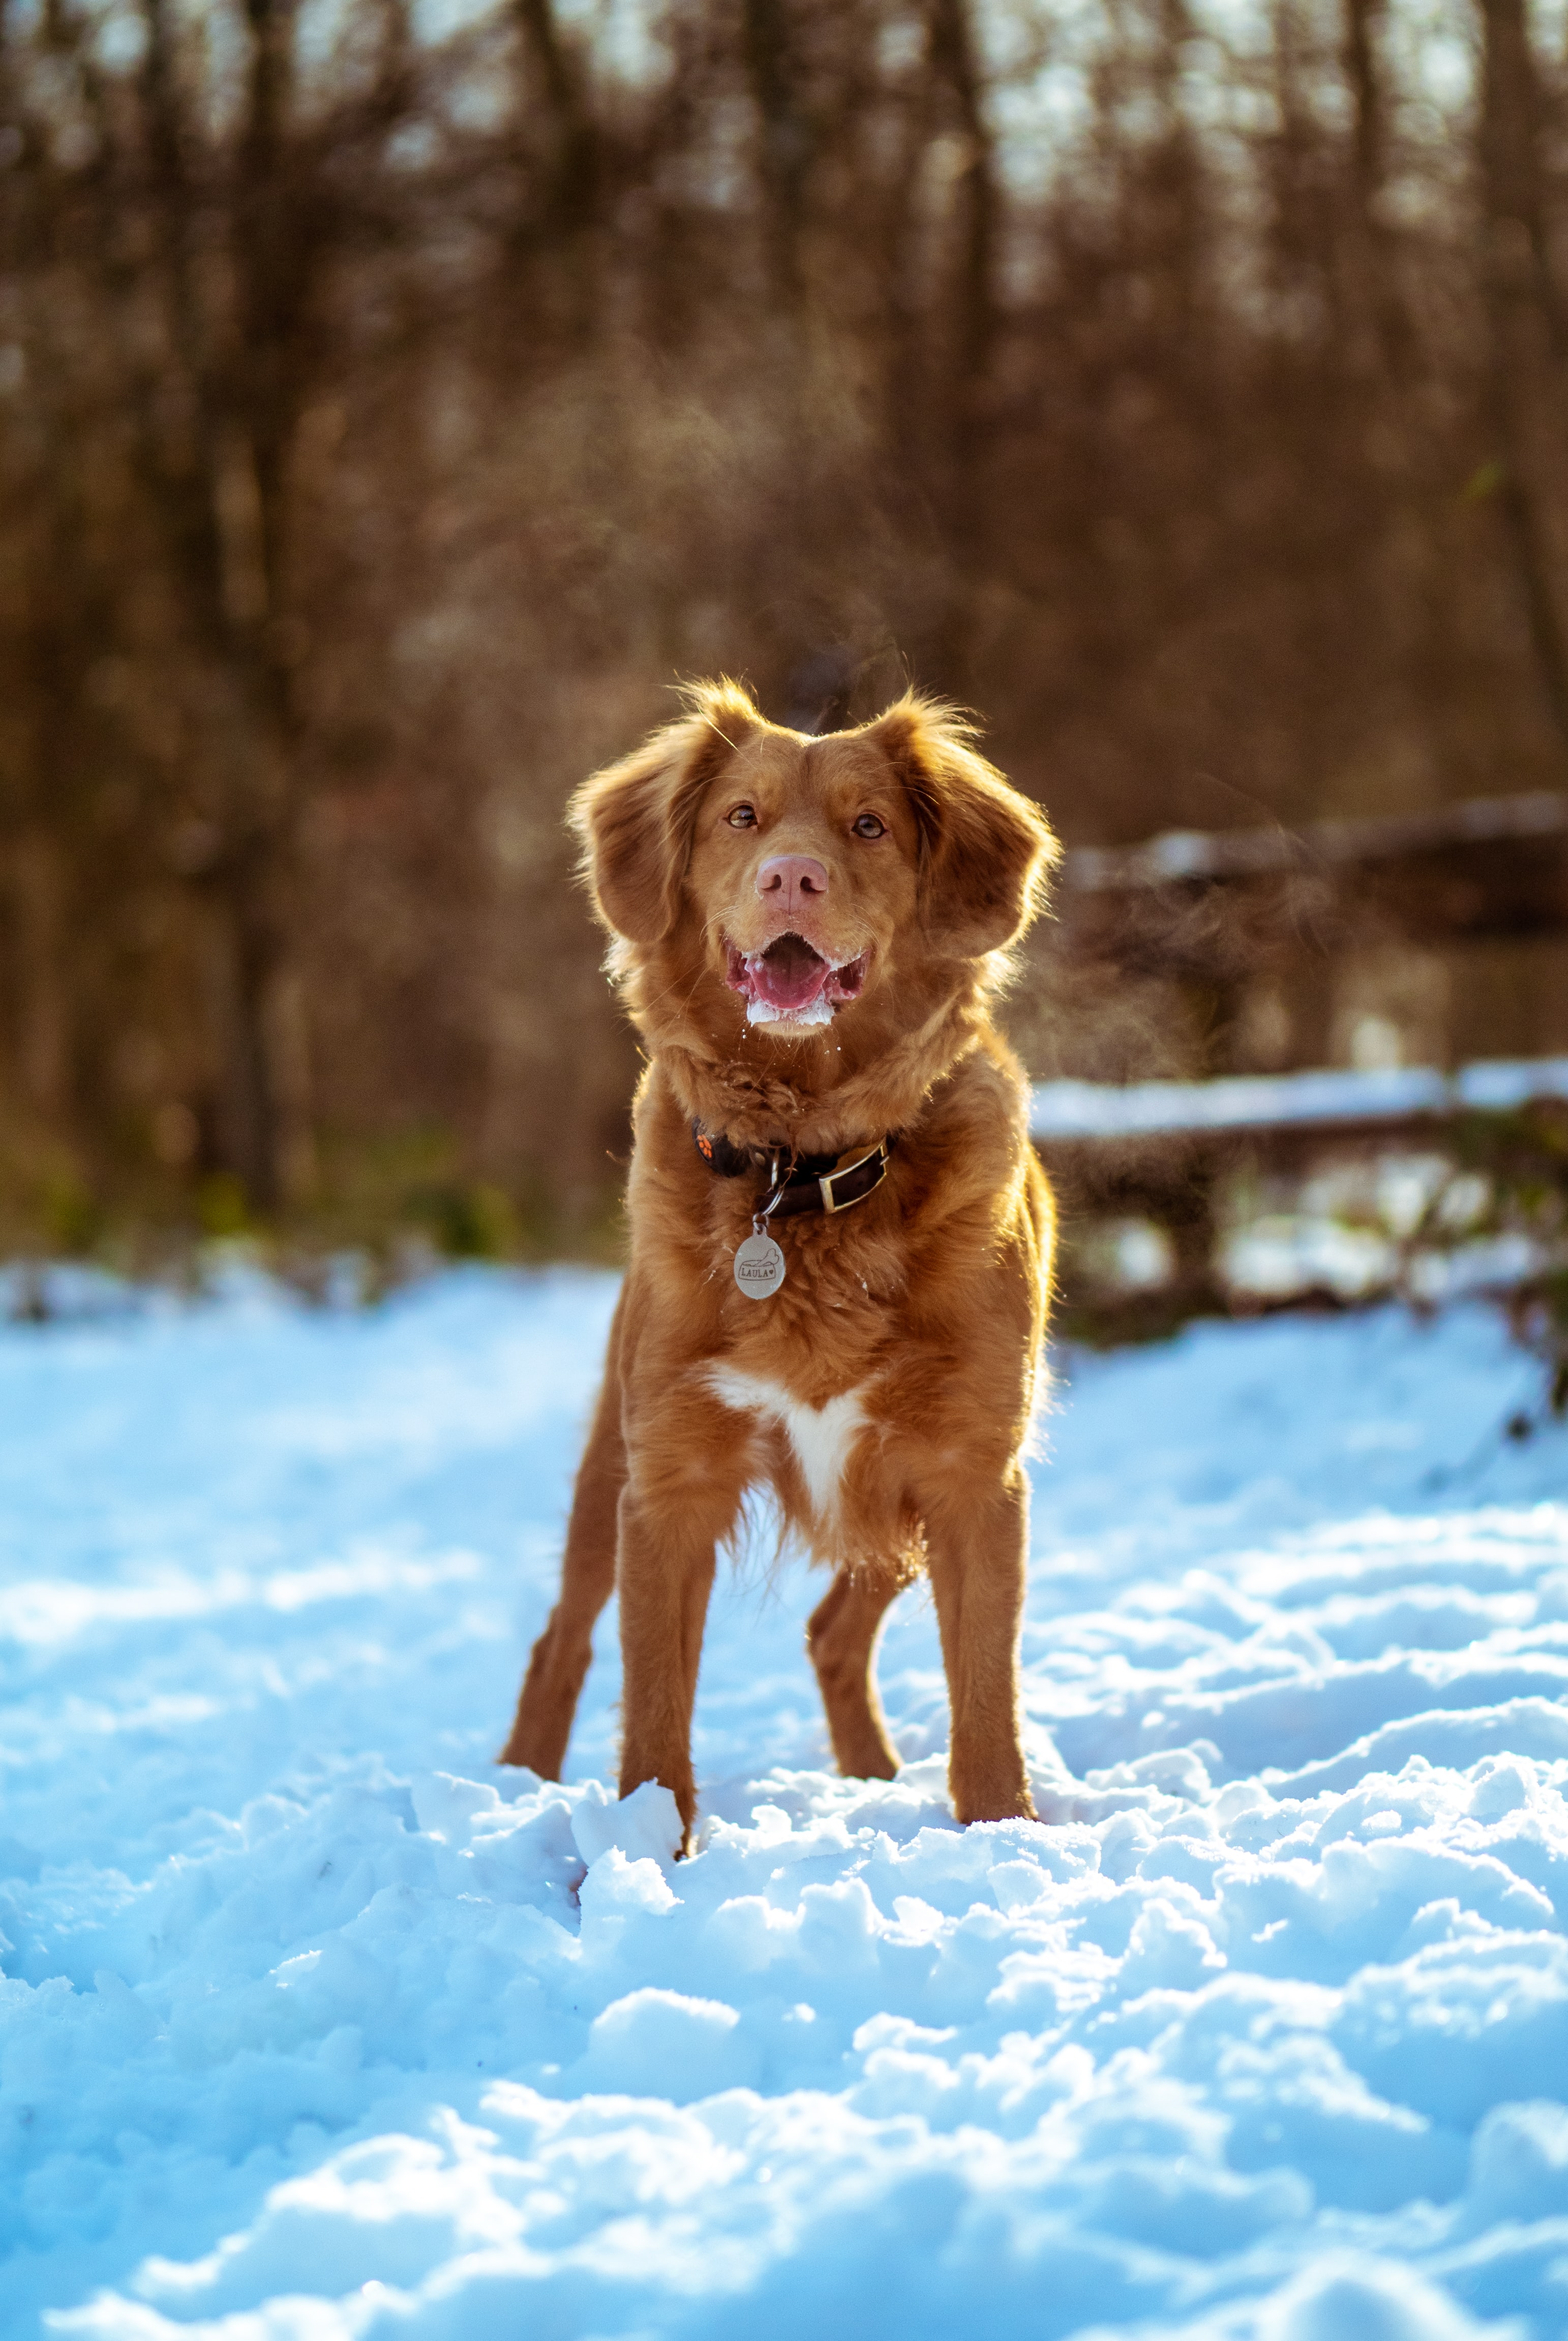 brown and white short coated dog stands on snow covered ground